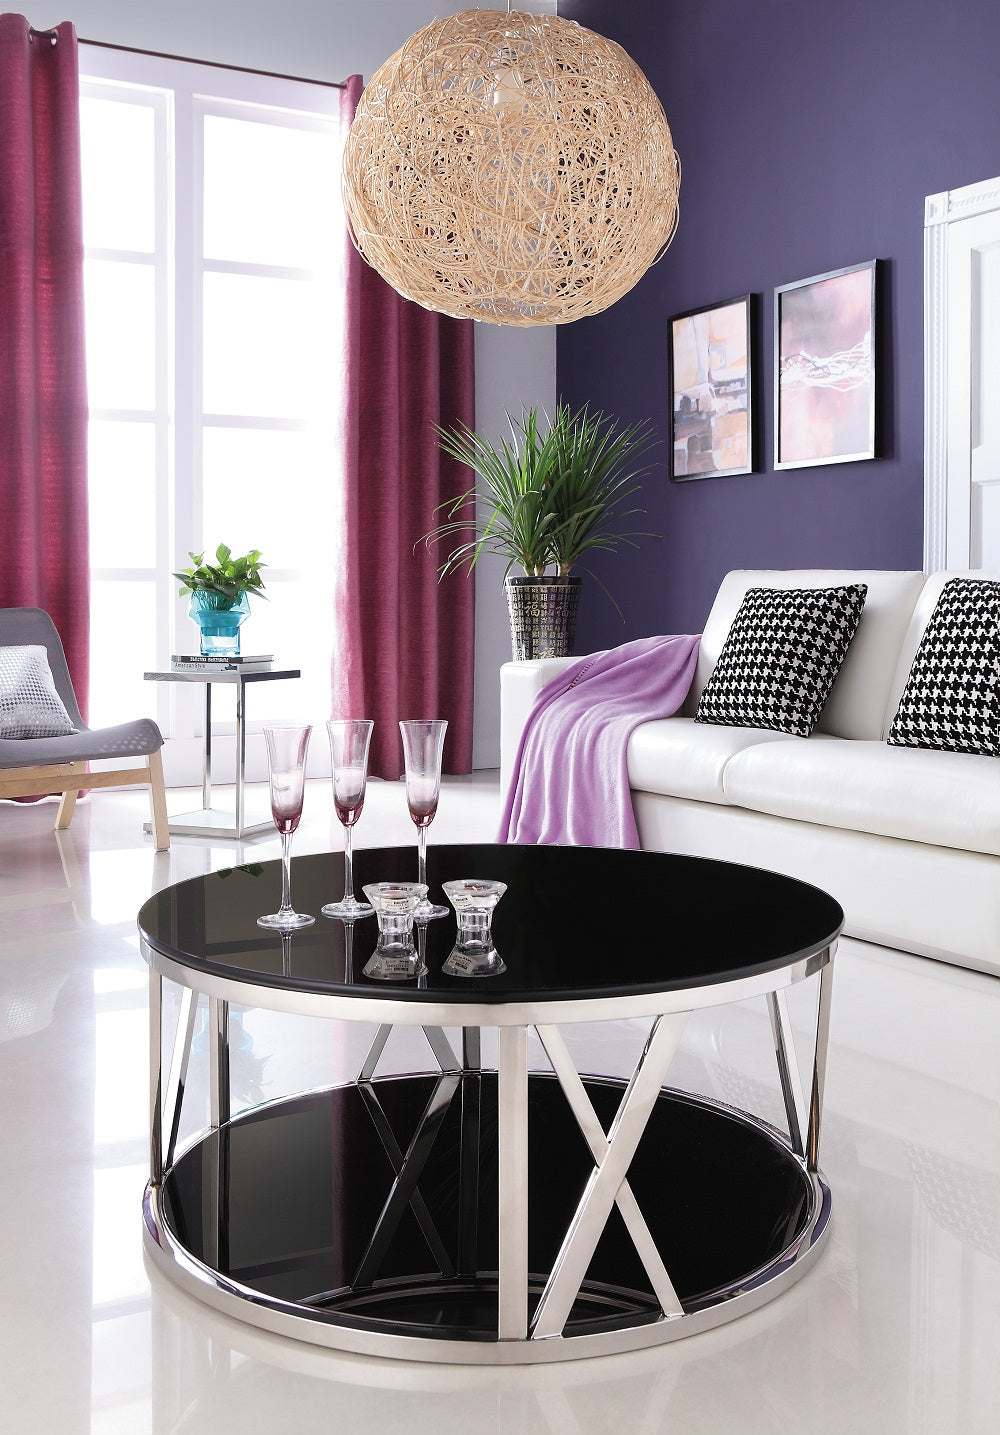 Kavir Polished Stainless Steel Round Coffee Table With Black Tempered  Glass. (one Left, Price Reduced)